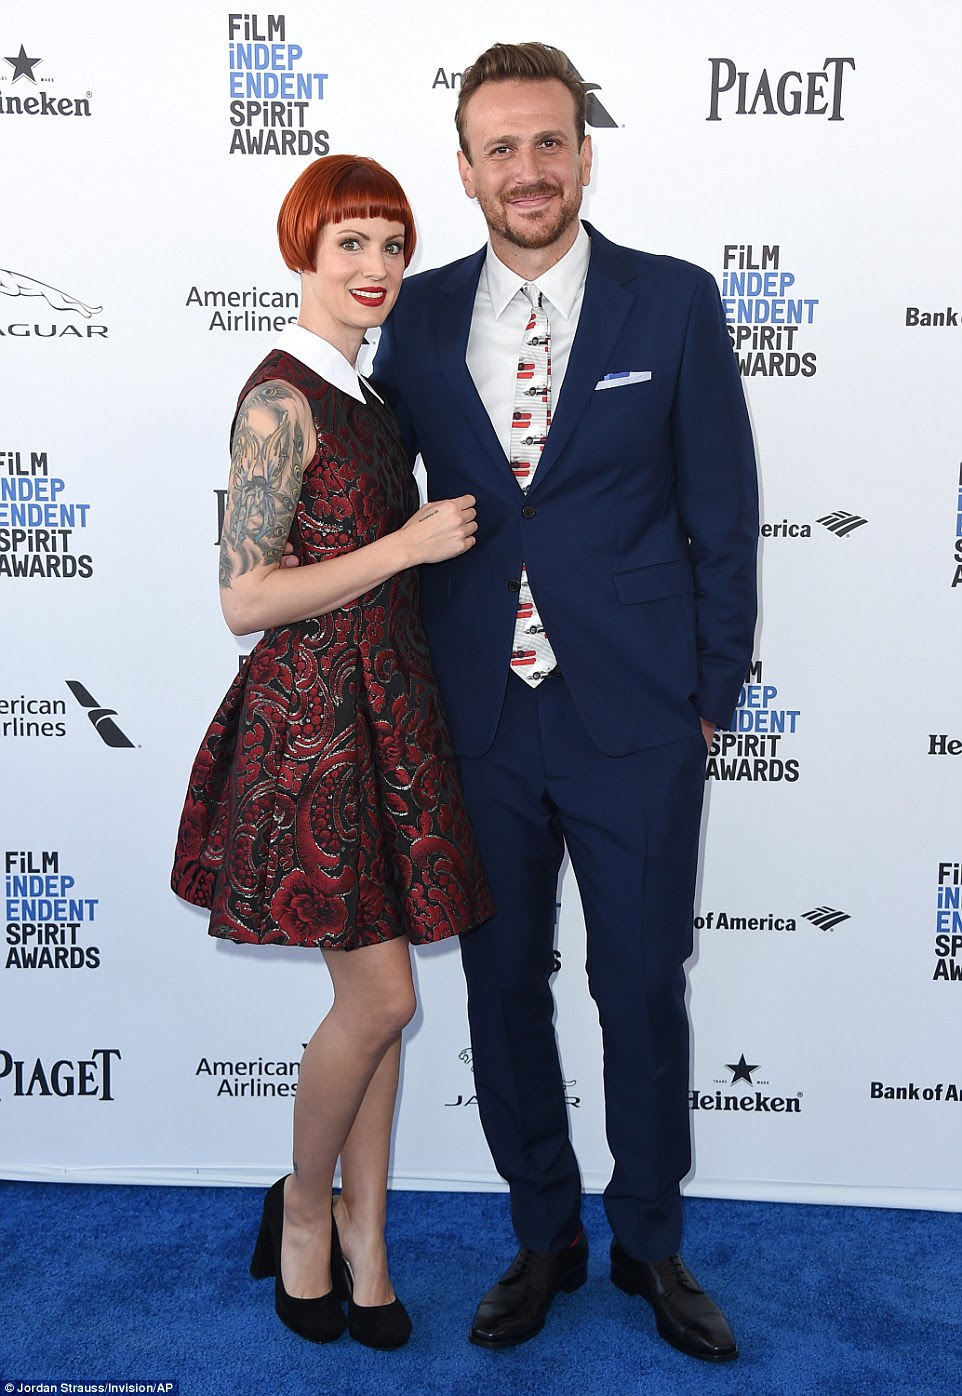 Making it a date: Jason Segel - who is nominated for best male lead in The End of The Tour - and girlfriend Alexis Mixter were a cute red carpet couple